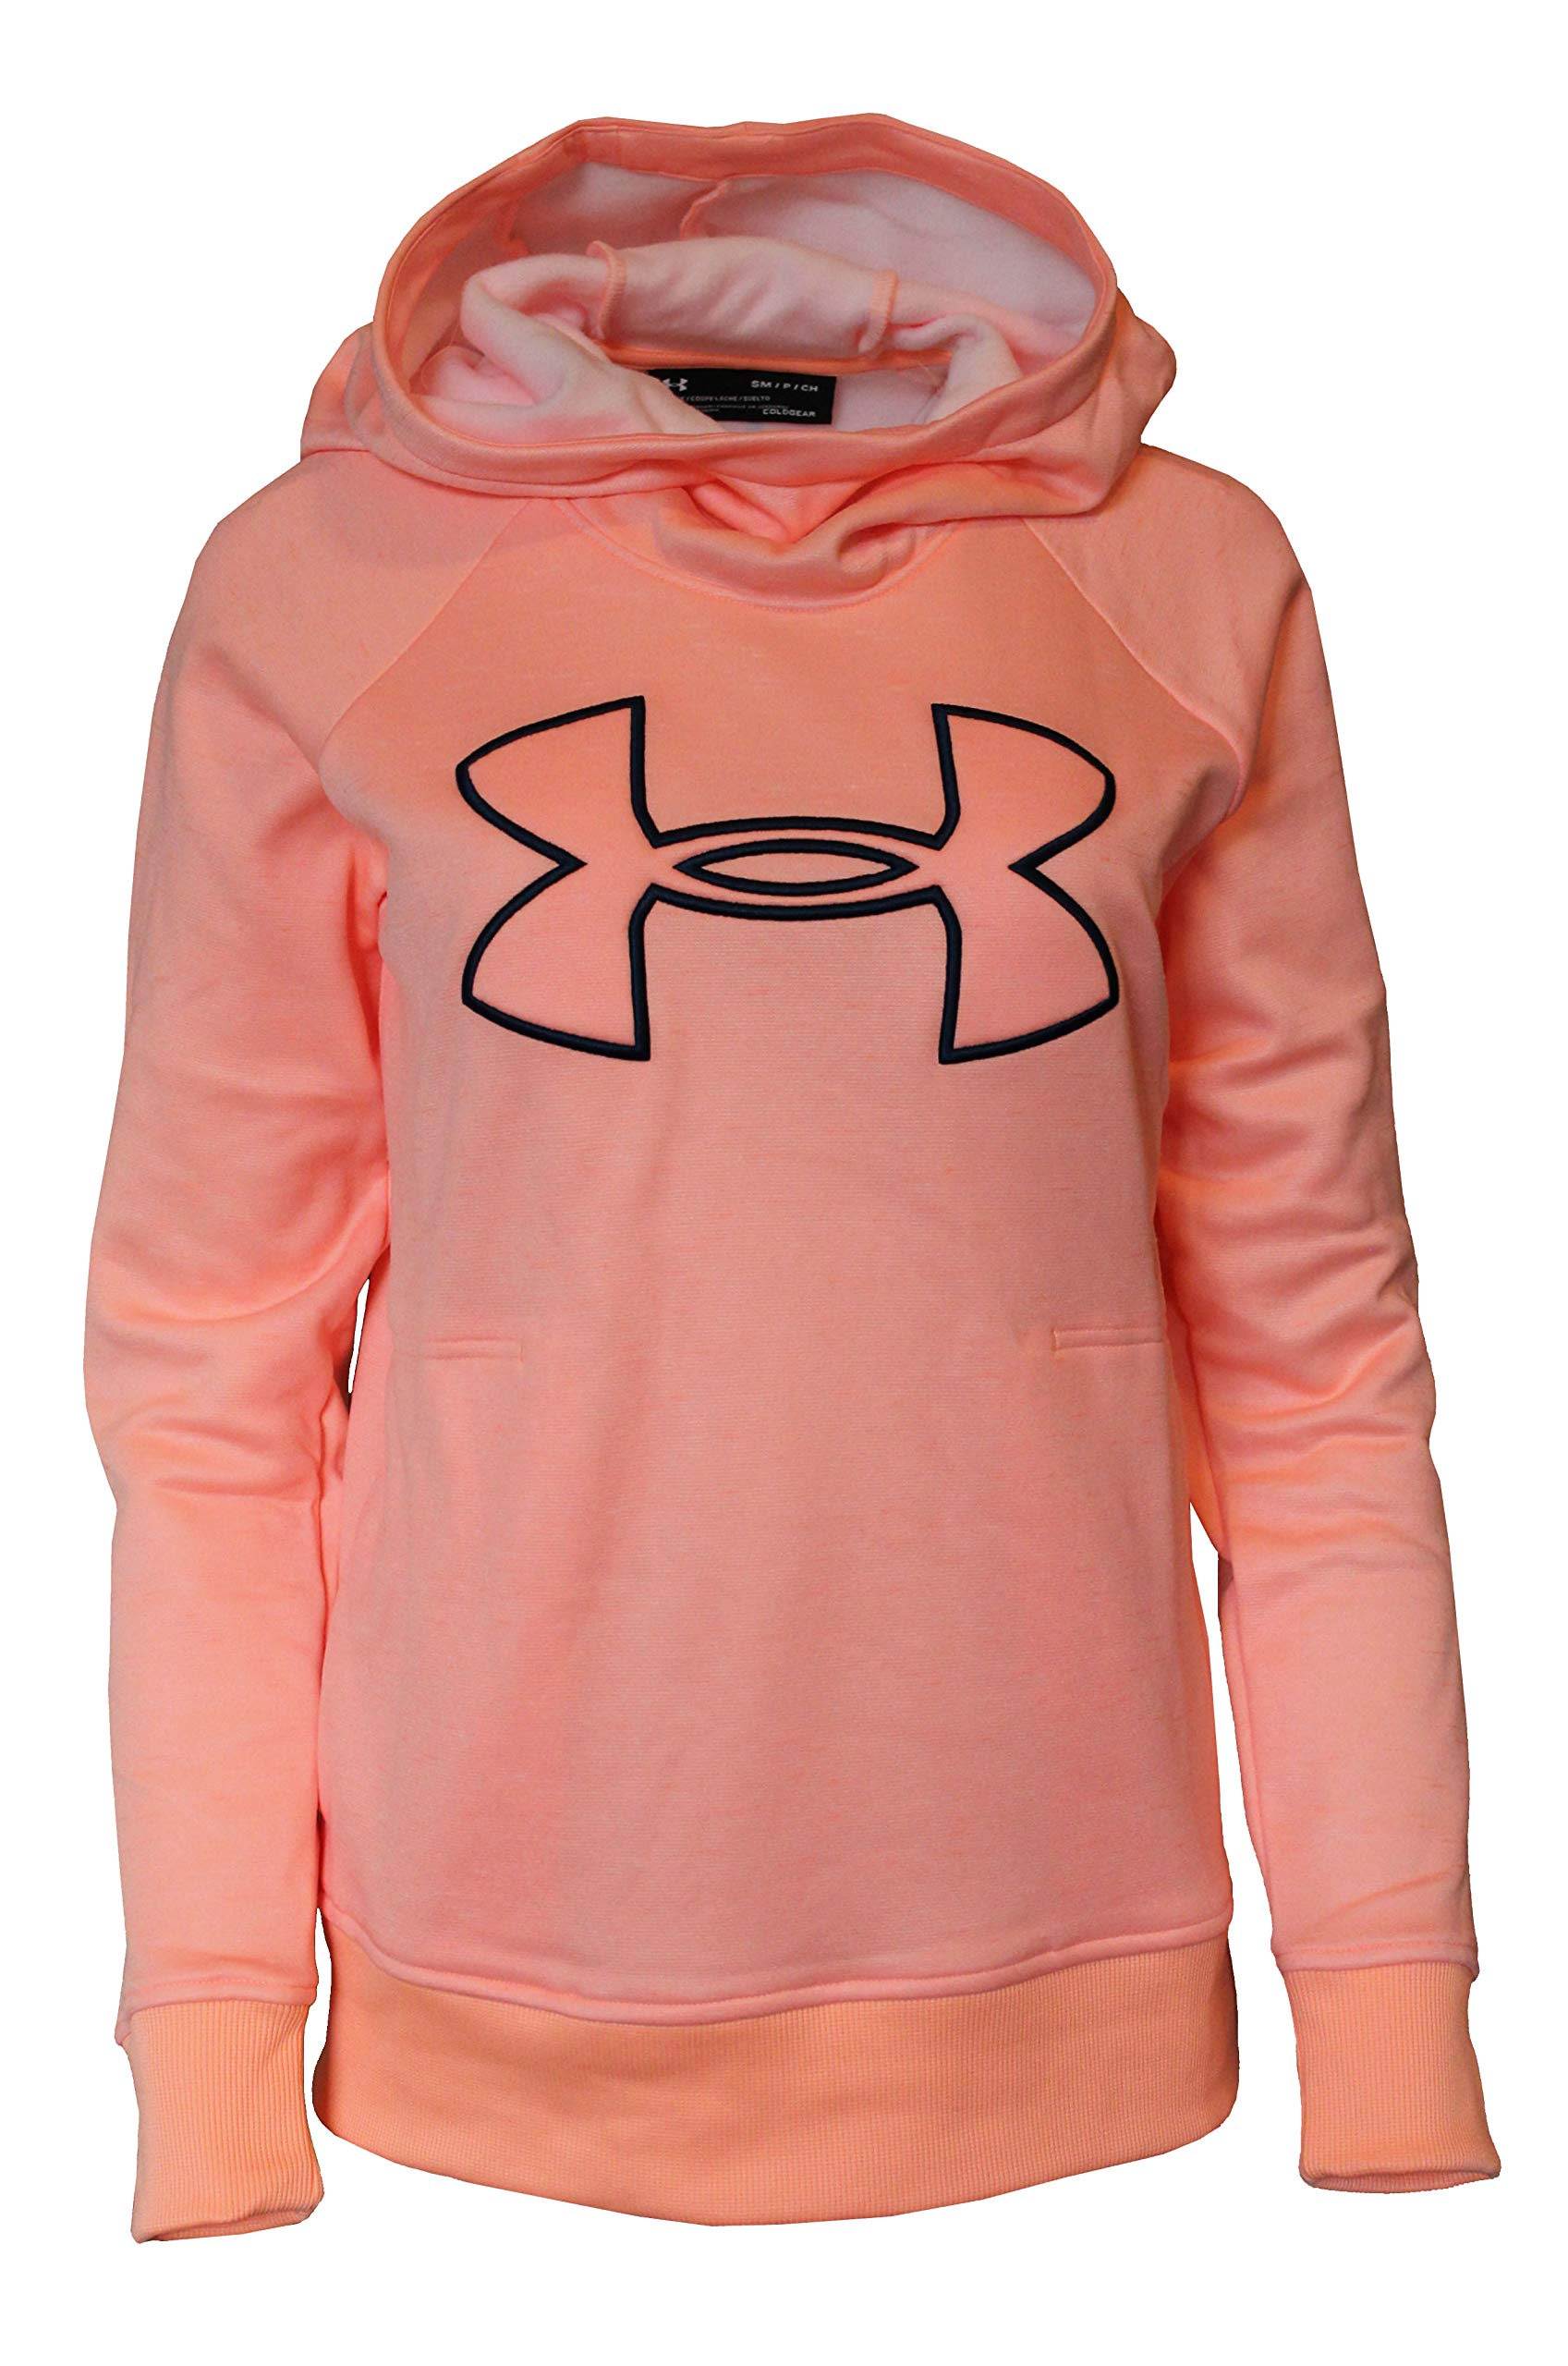 Under Armour Women's Hoodie Active Big Logo Pullover 1318396 (Peach Horizon, S) by Under Armour